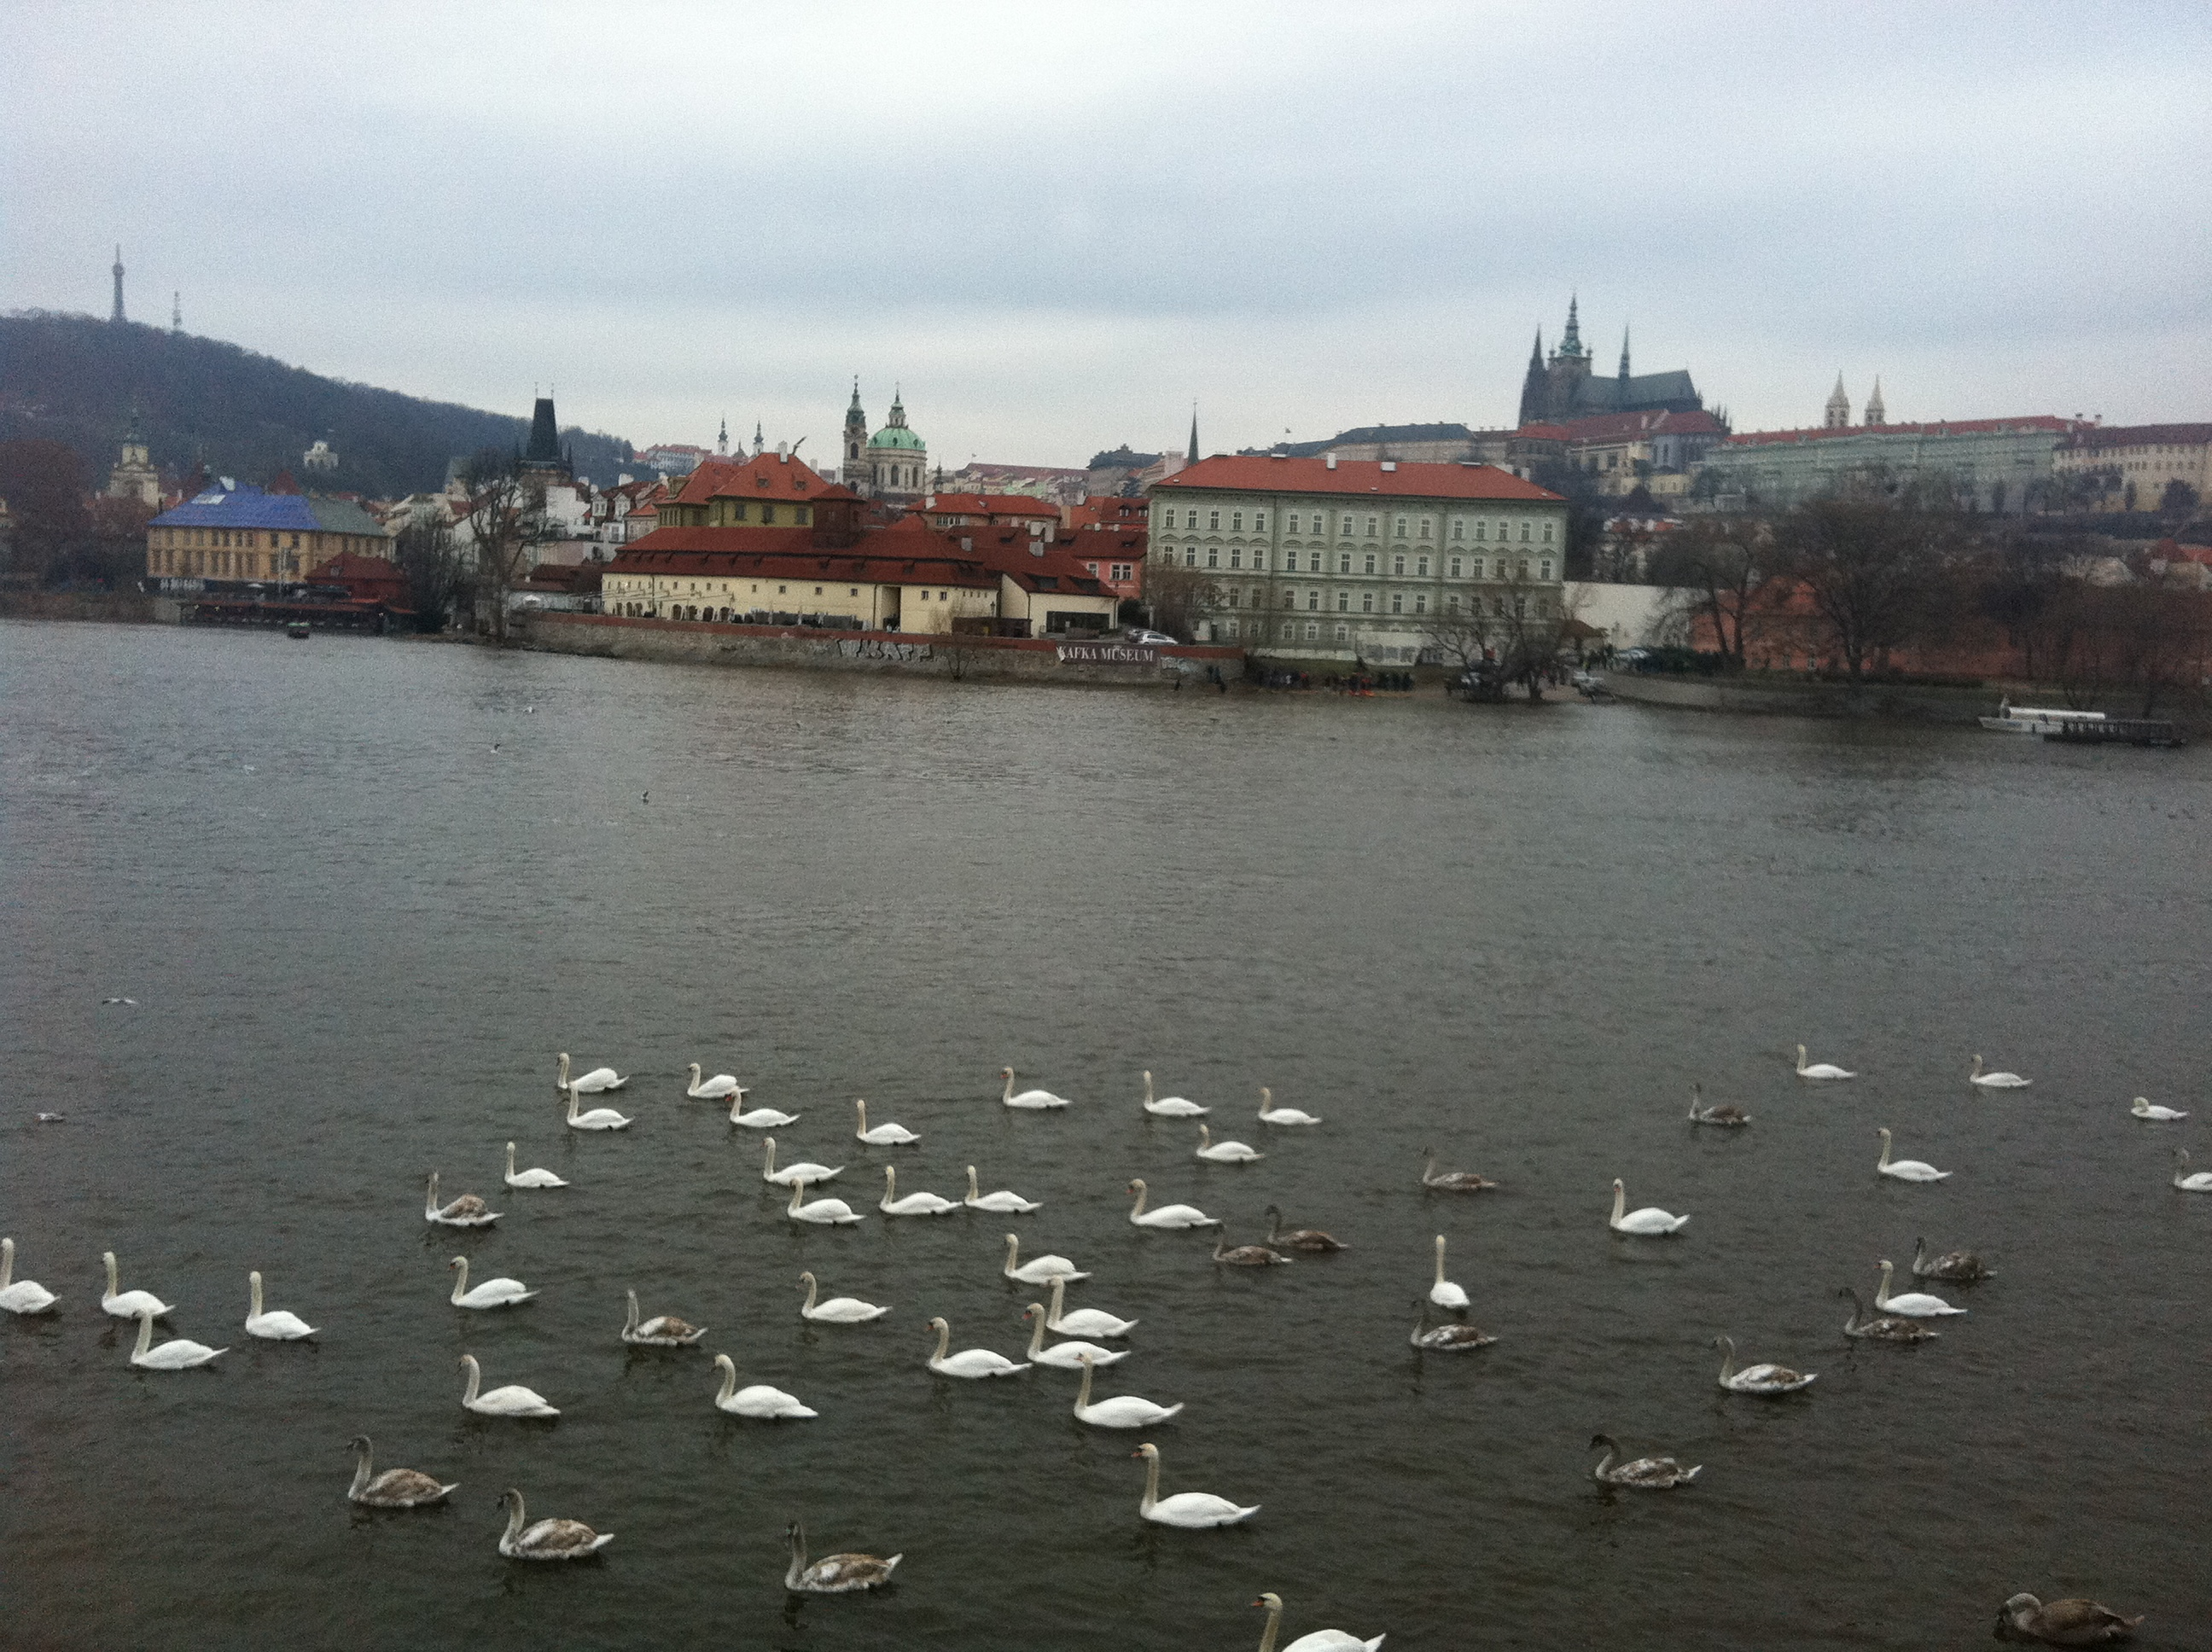 Swans swimming towards Charles Bridge